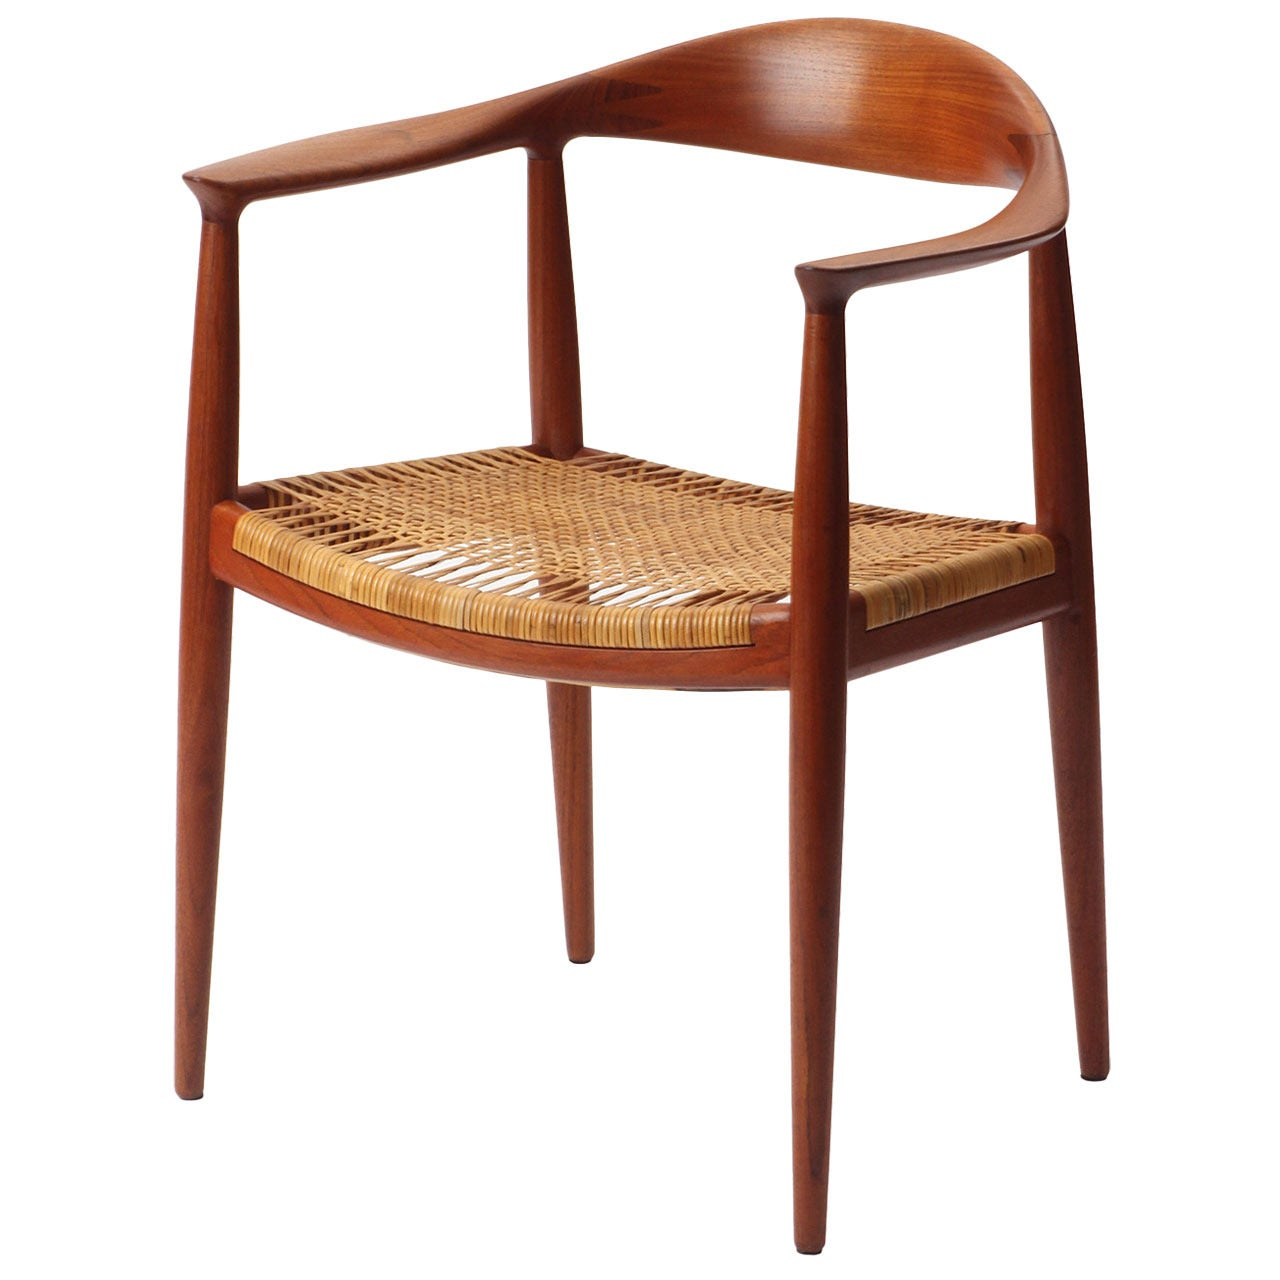 'The Chair' a Teak Round Chair with a Caned Seat by Hans J. Wegner